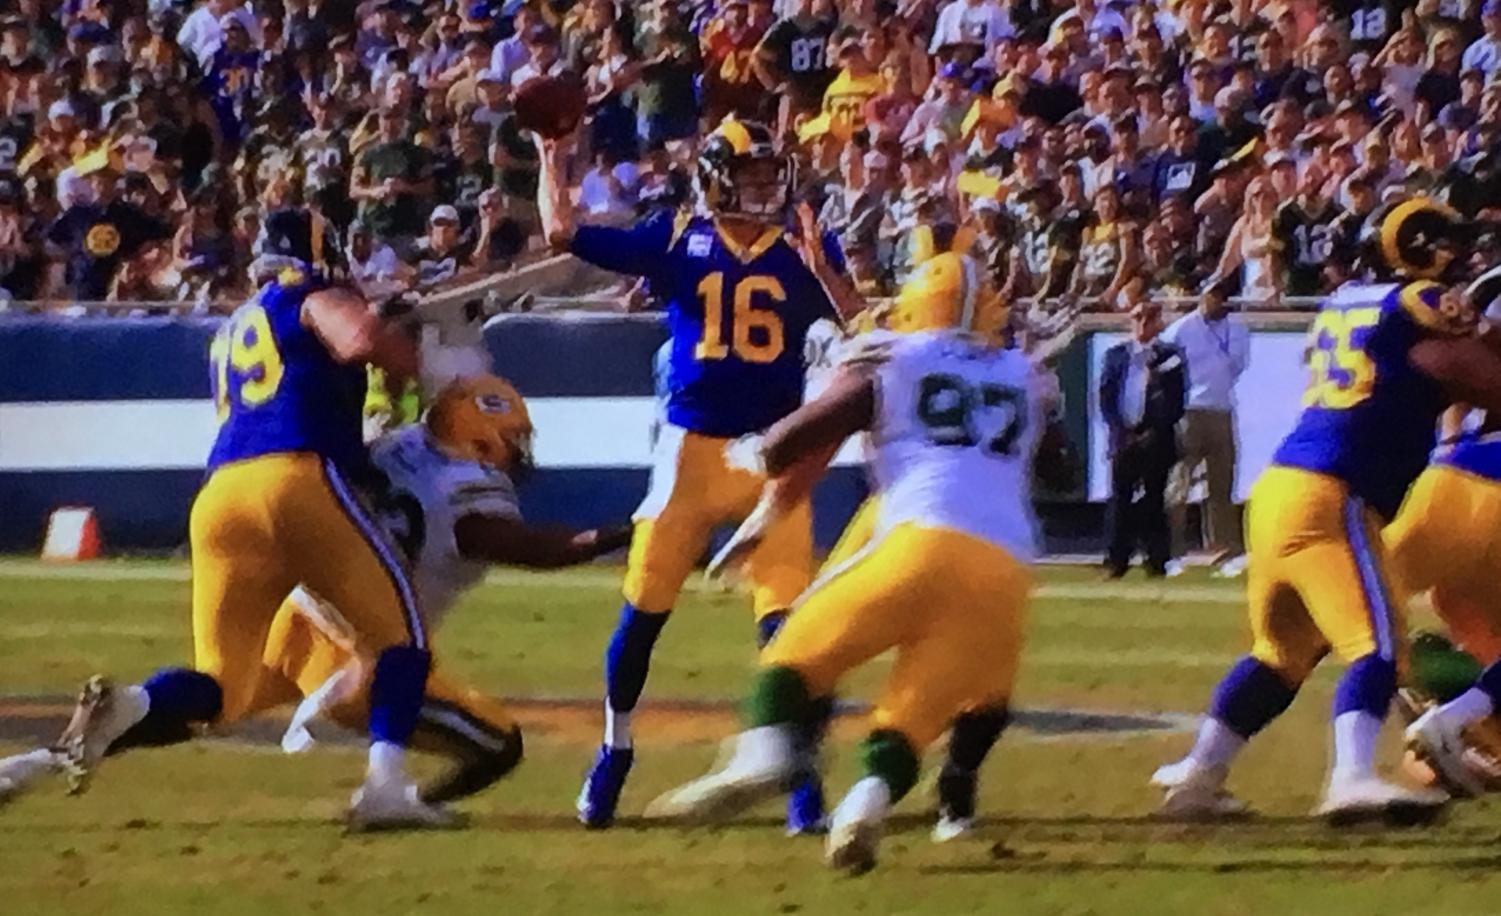 Jared Goff makes a pass against the Green Bay Packers.